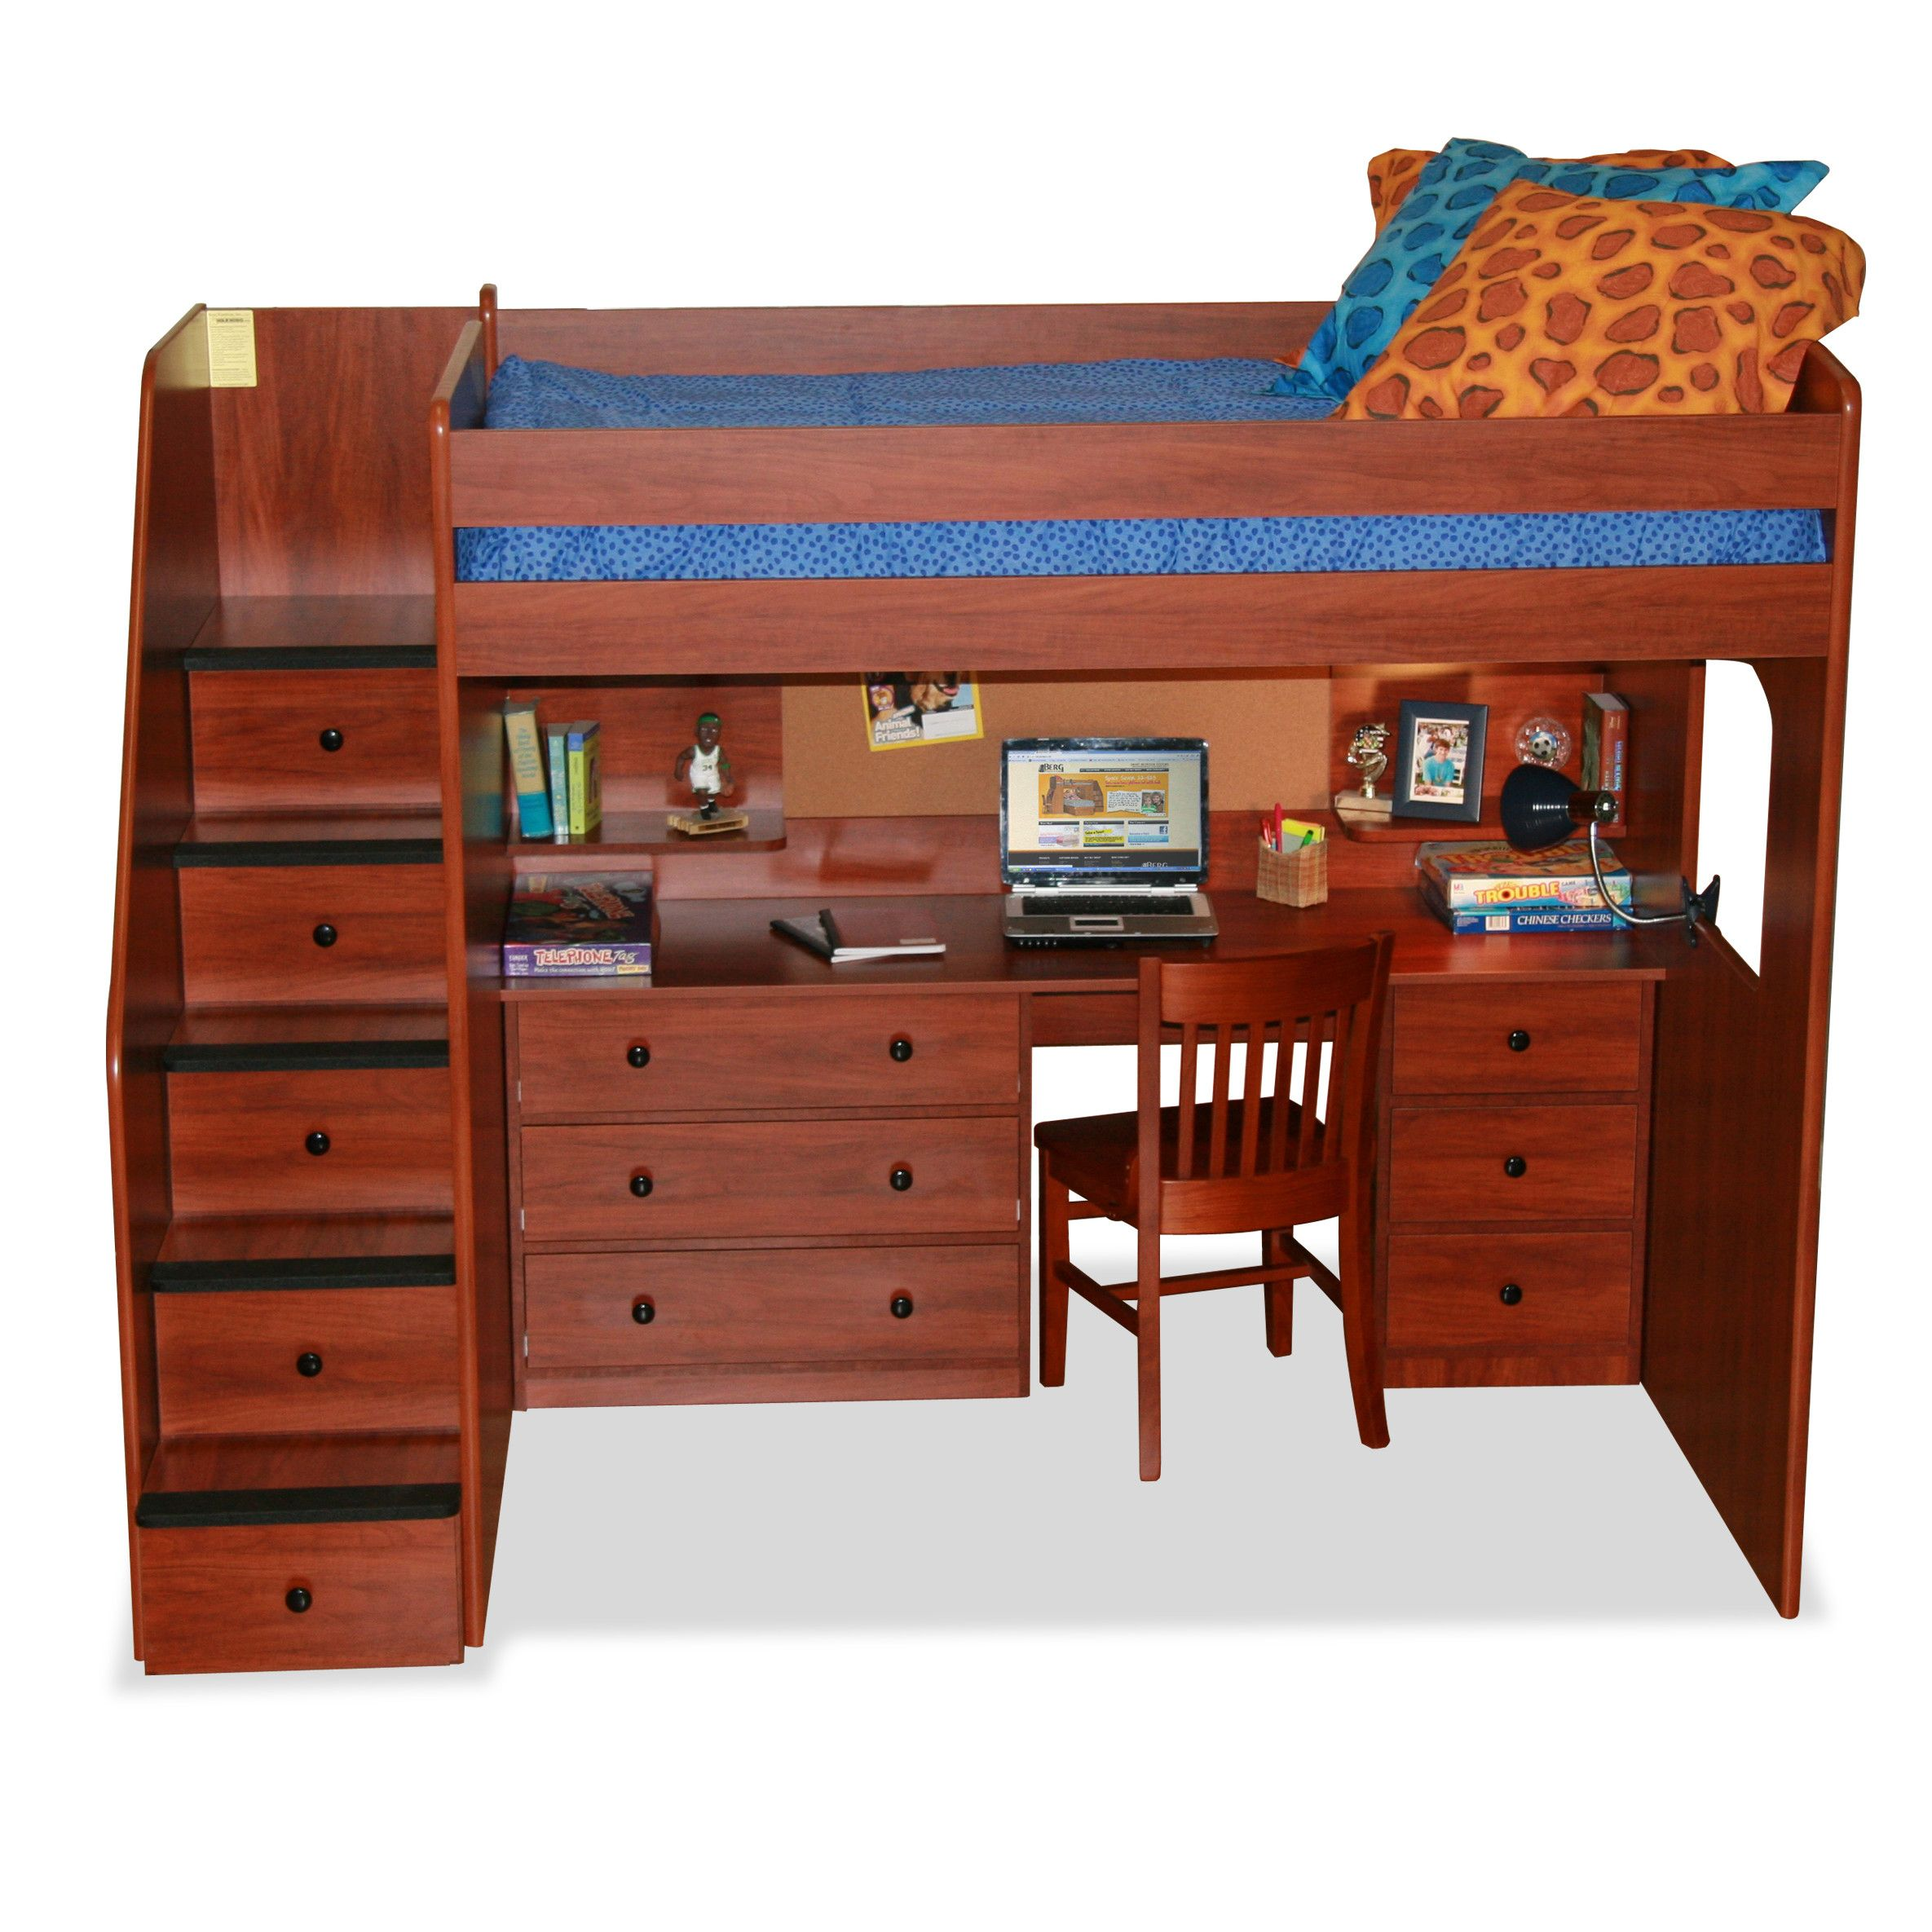 of plans beds frame size drawers full l storage stairs and staircase solid shape bed stairway bunk free with bedding wood